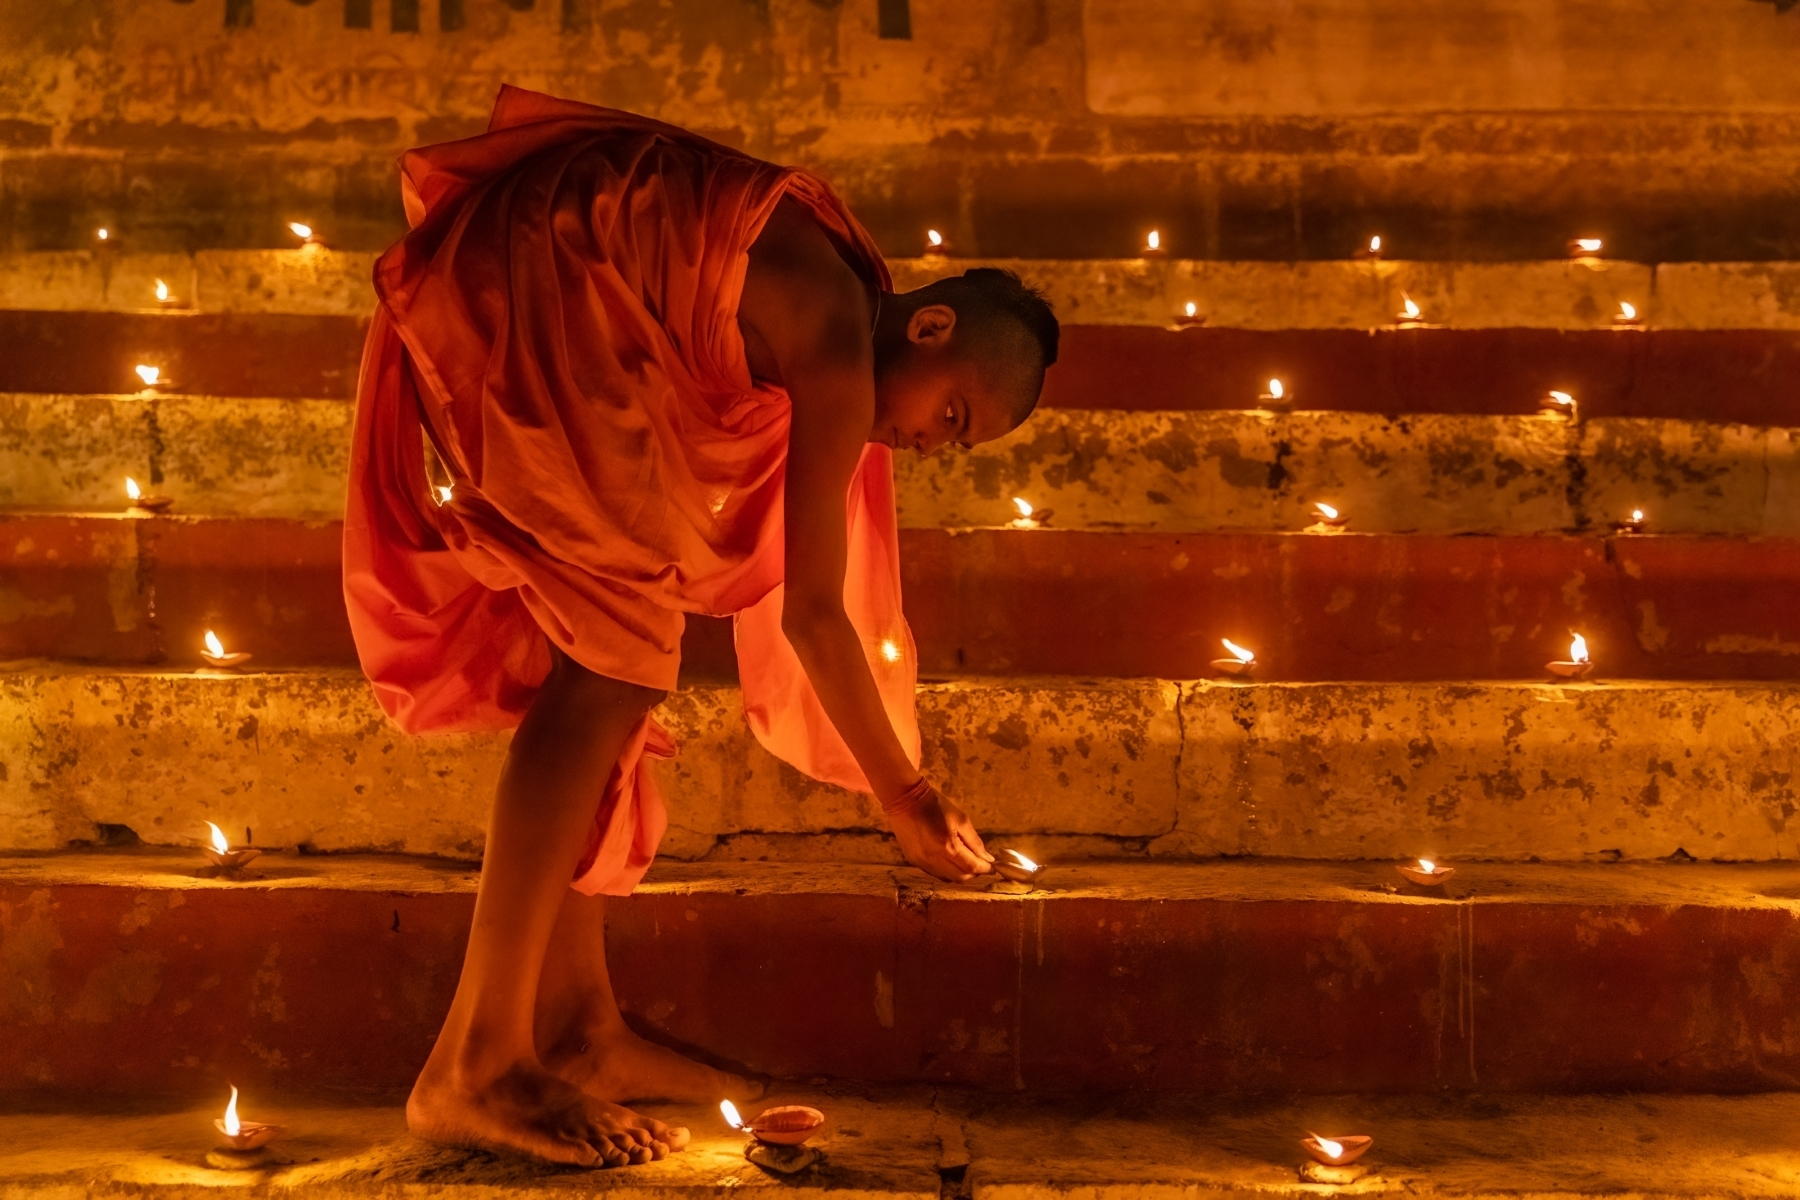 Dev-Diwali-3-This-act-of-offering-lamps-to-the-Ganga-is-called-Deepdaan.-JM-Place-by-Rajani-Ramanathan-LV